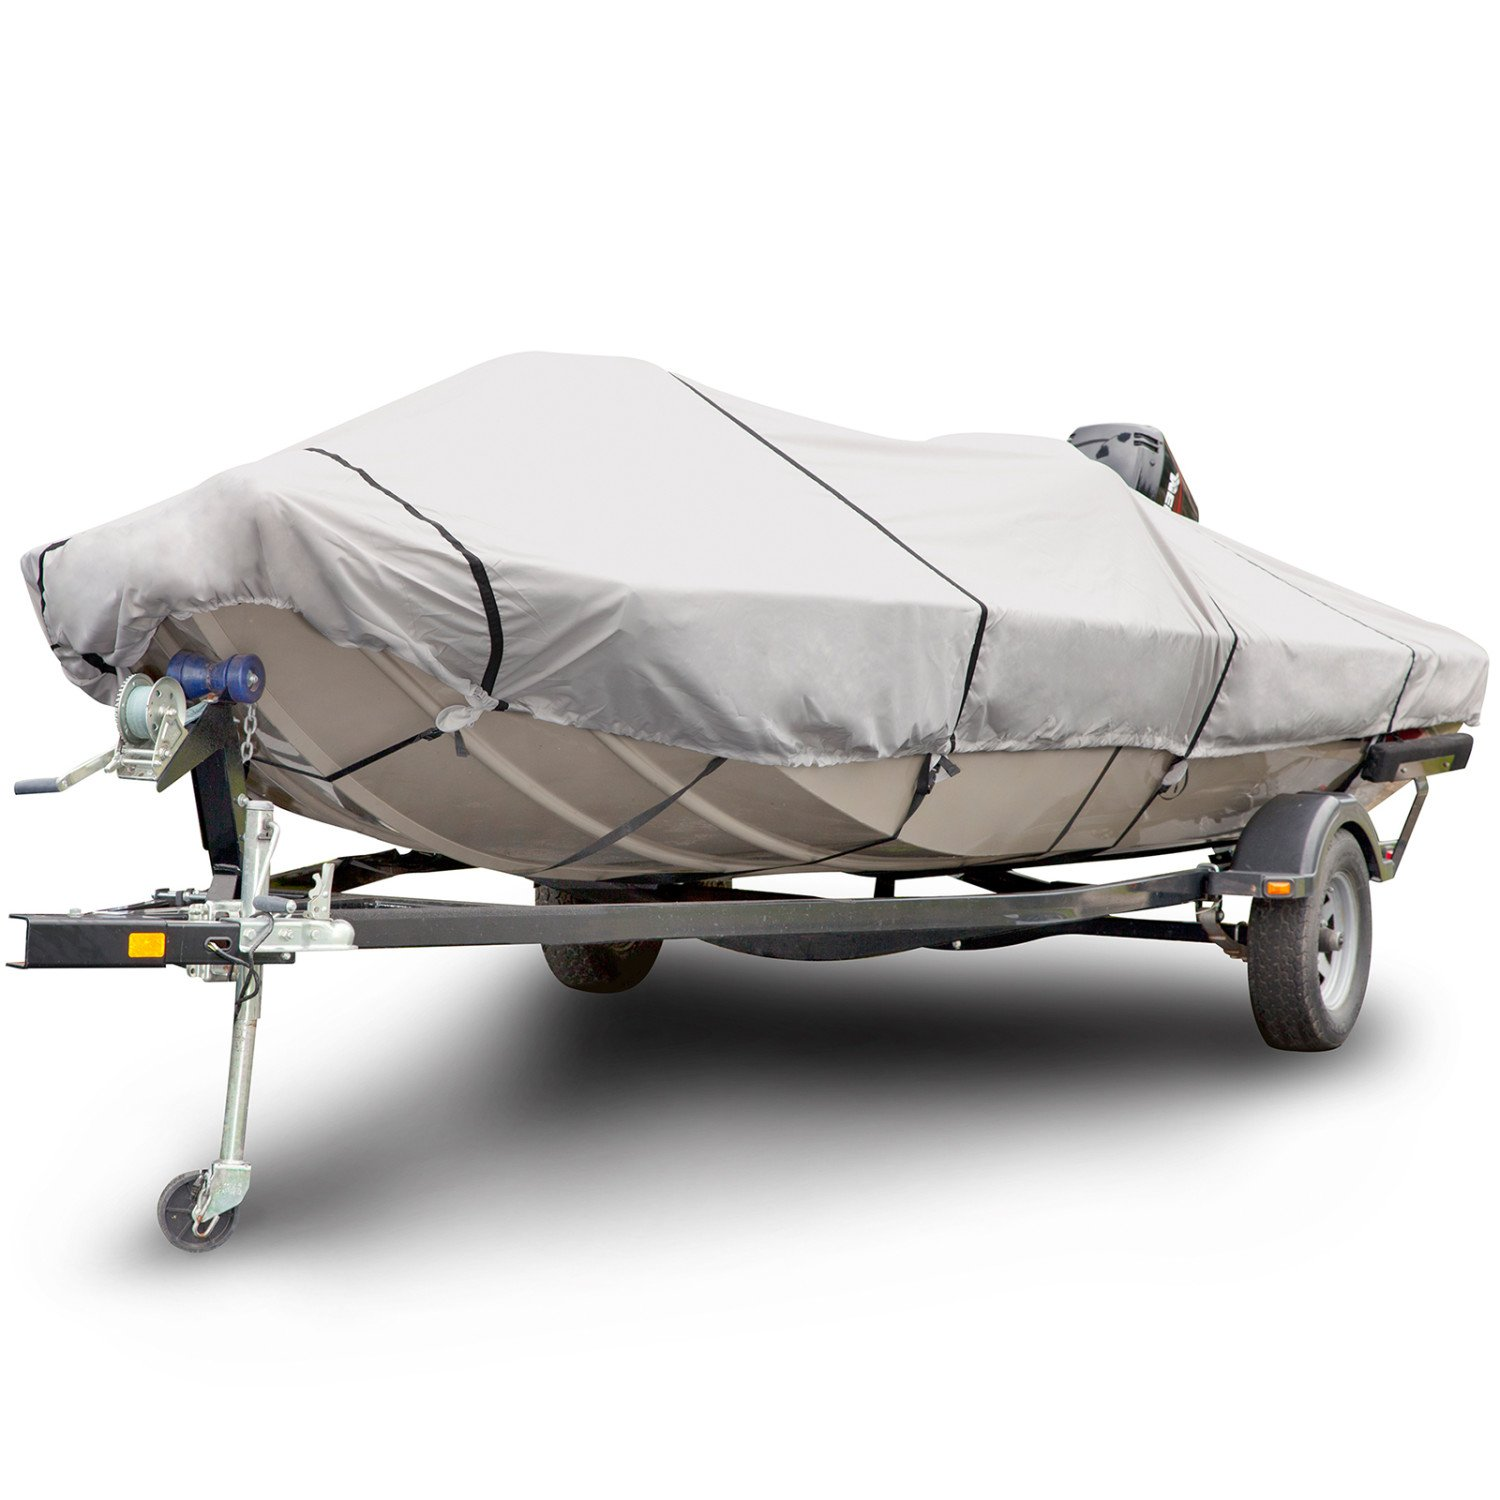 Budge 600 Denier Boat Cover fits Center Console Flat Front/ Skiff / Deck Boats B-641-X6 (20' to 22' Long, Gray)